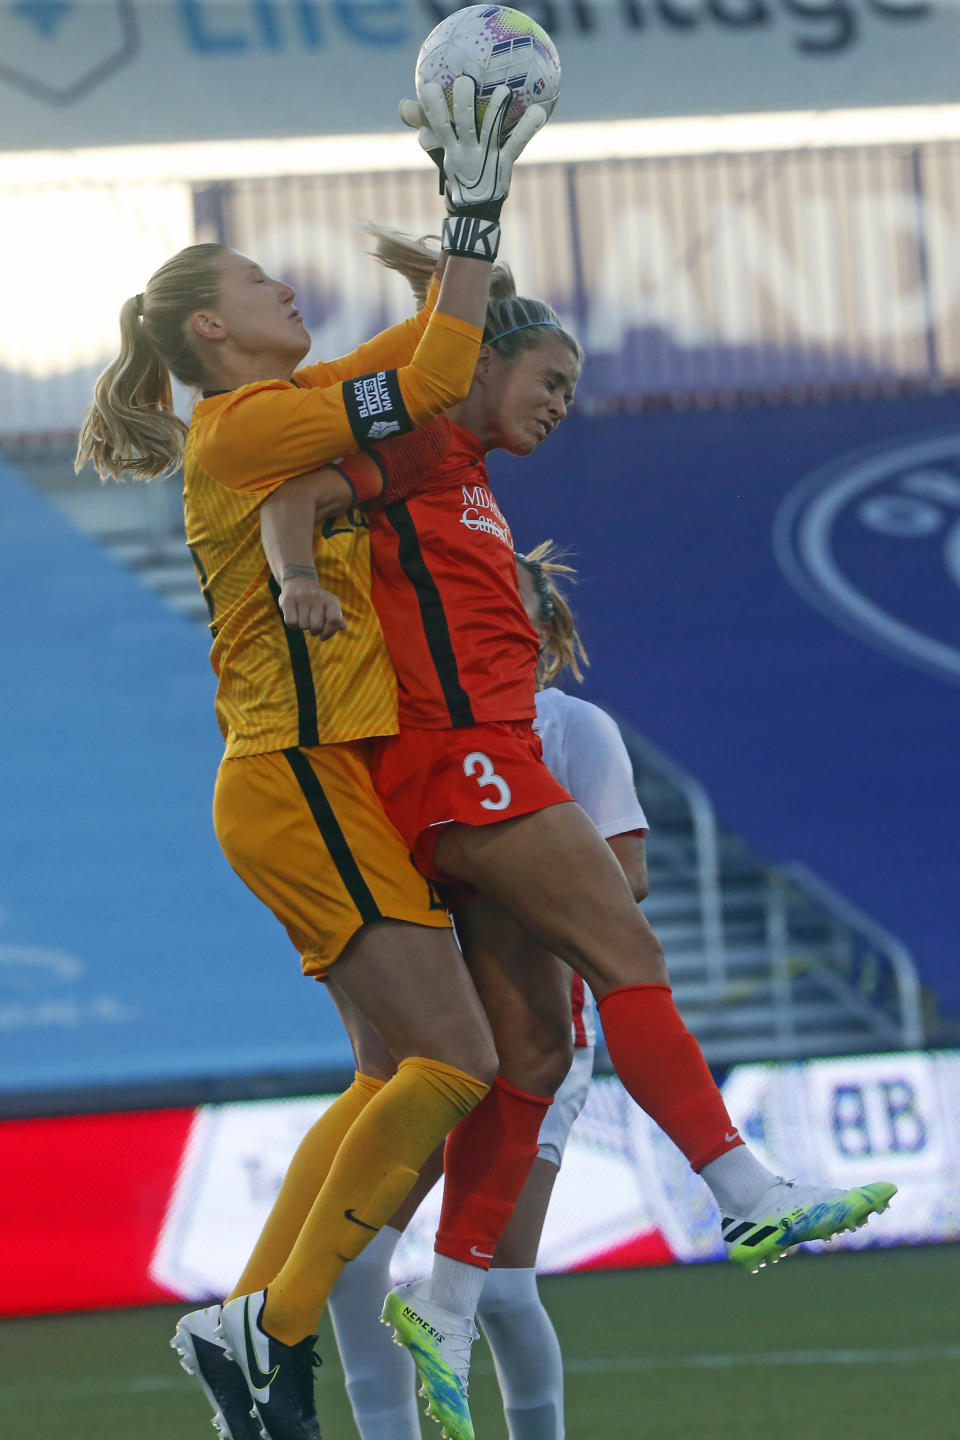 OL Reign goalkeeper Casey Murphy, left, makes a save as Houston Dash forward Rachel Daly (3) goes up during the first half of an NWSL Challenge Cup soccer match at Zions Bank Stadium, Saturday, July 4, 2020, Herriman, Utah. (AP Photo/Rick Bowmer)